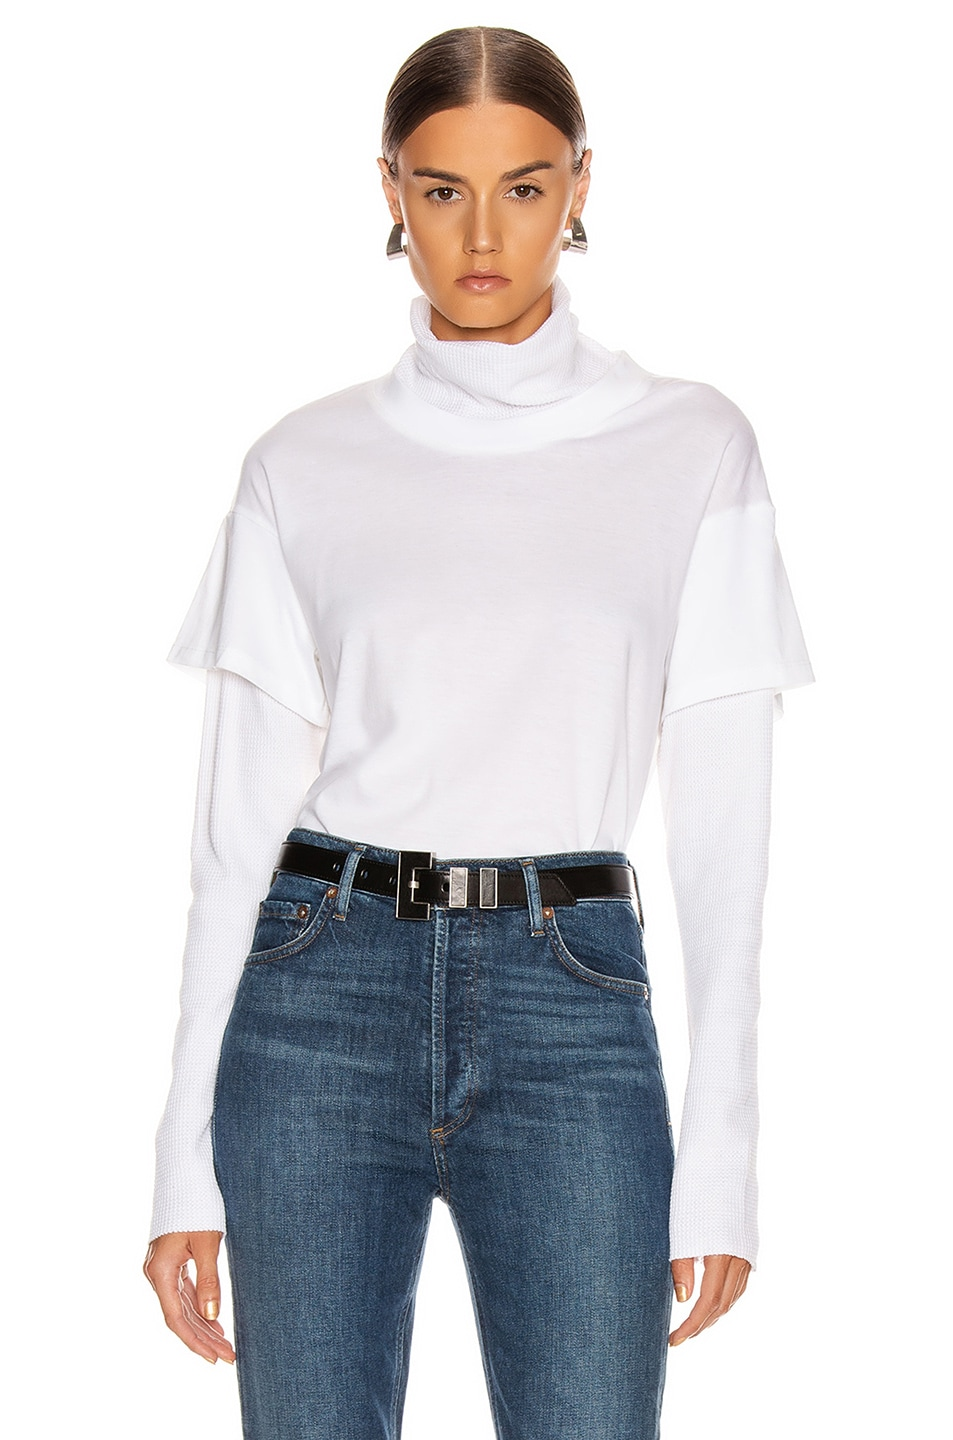 Image 1 of The Range Stark Jersey Layered Boy Tee Turtleneck in White